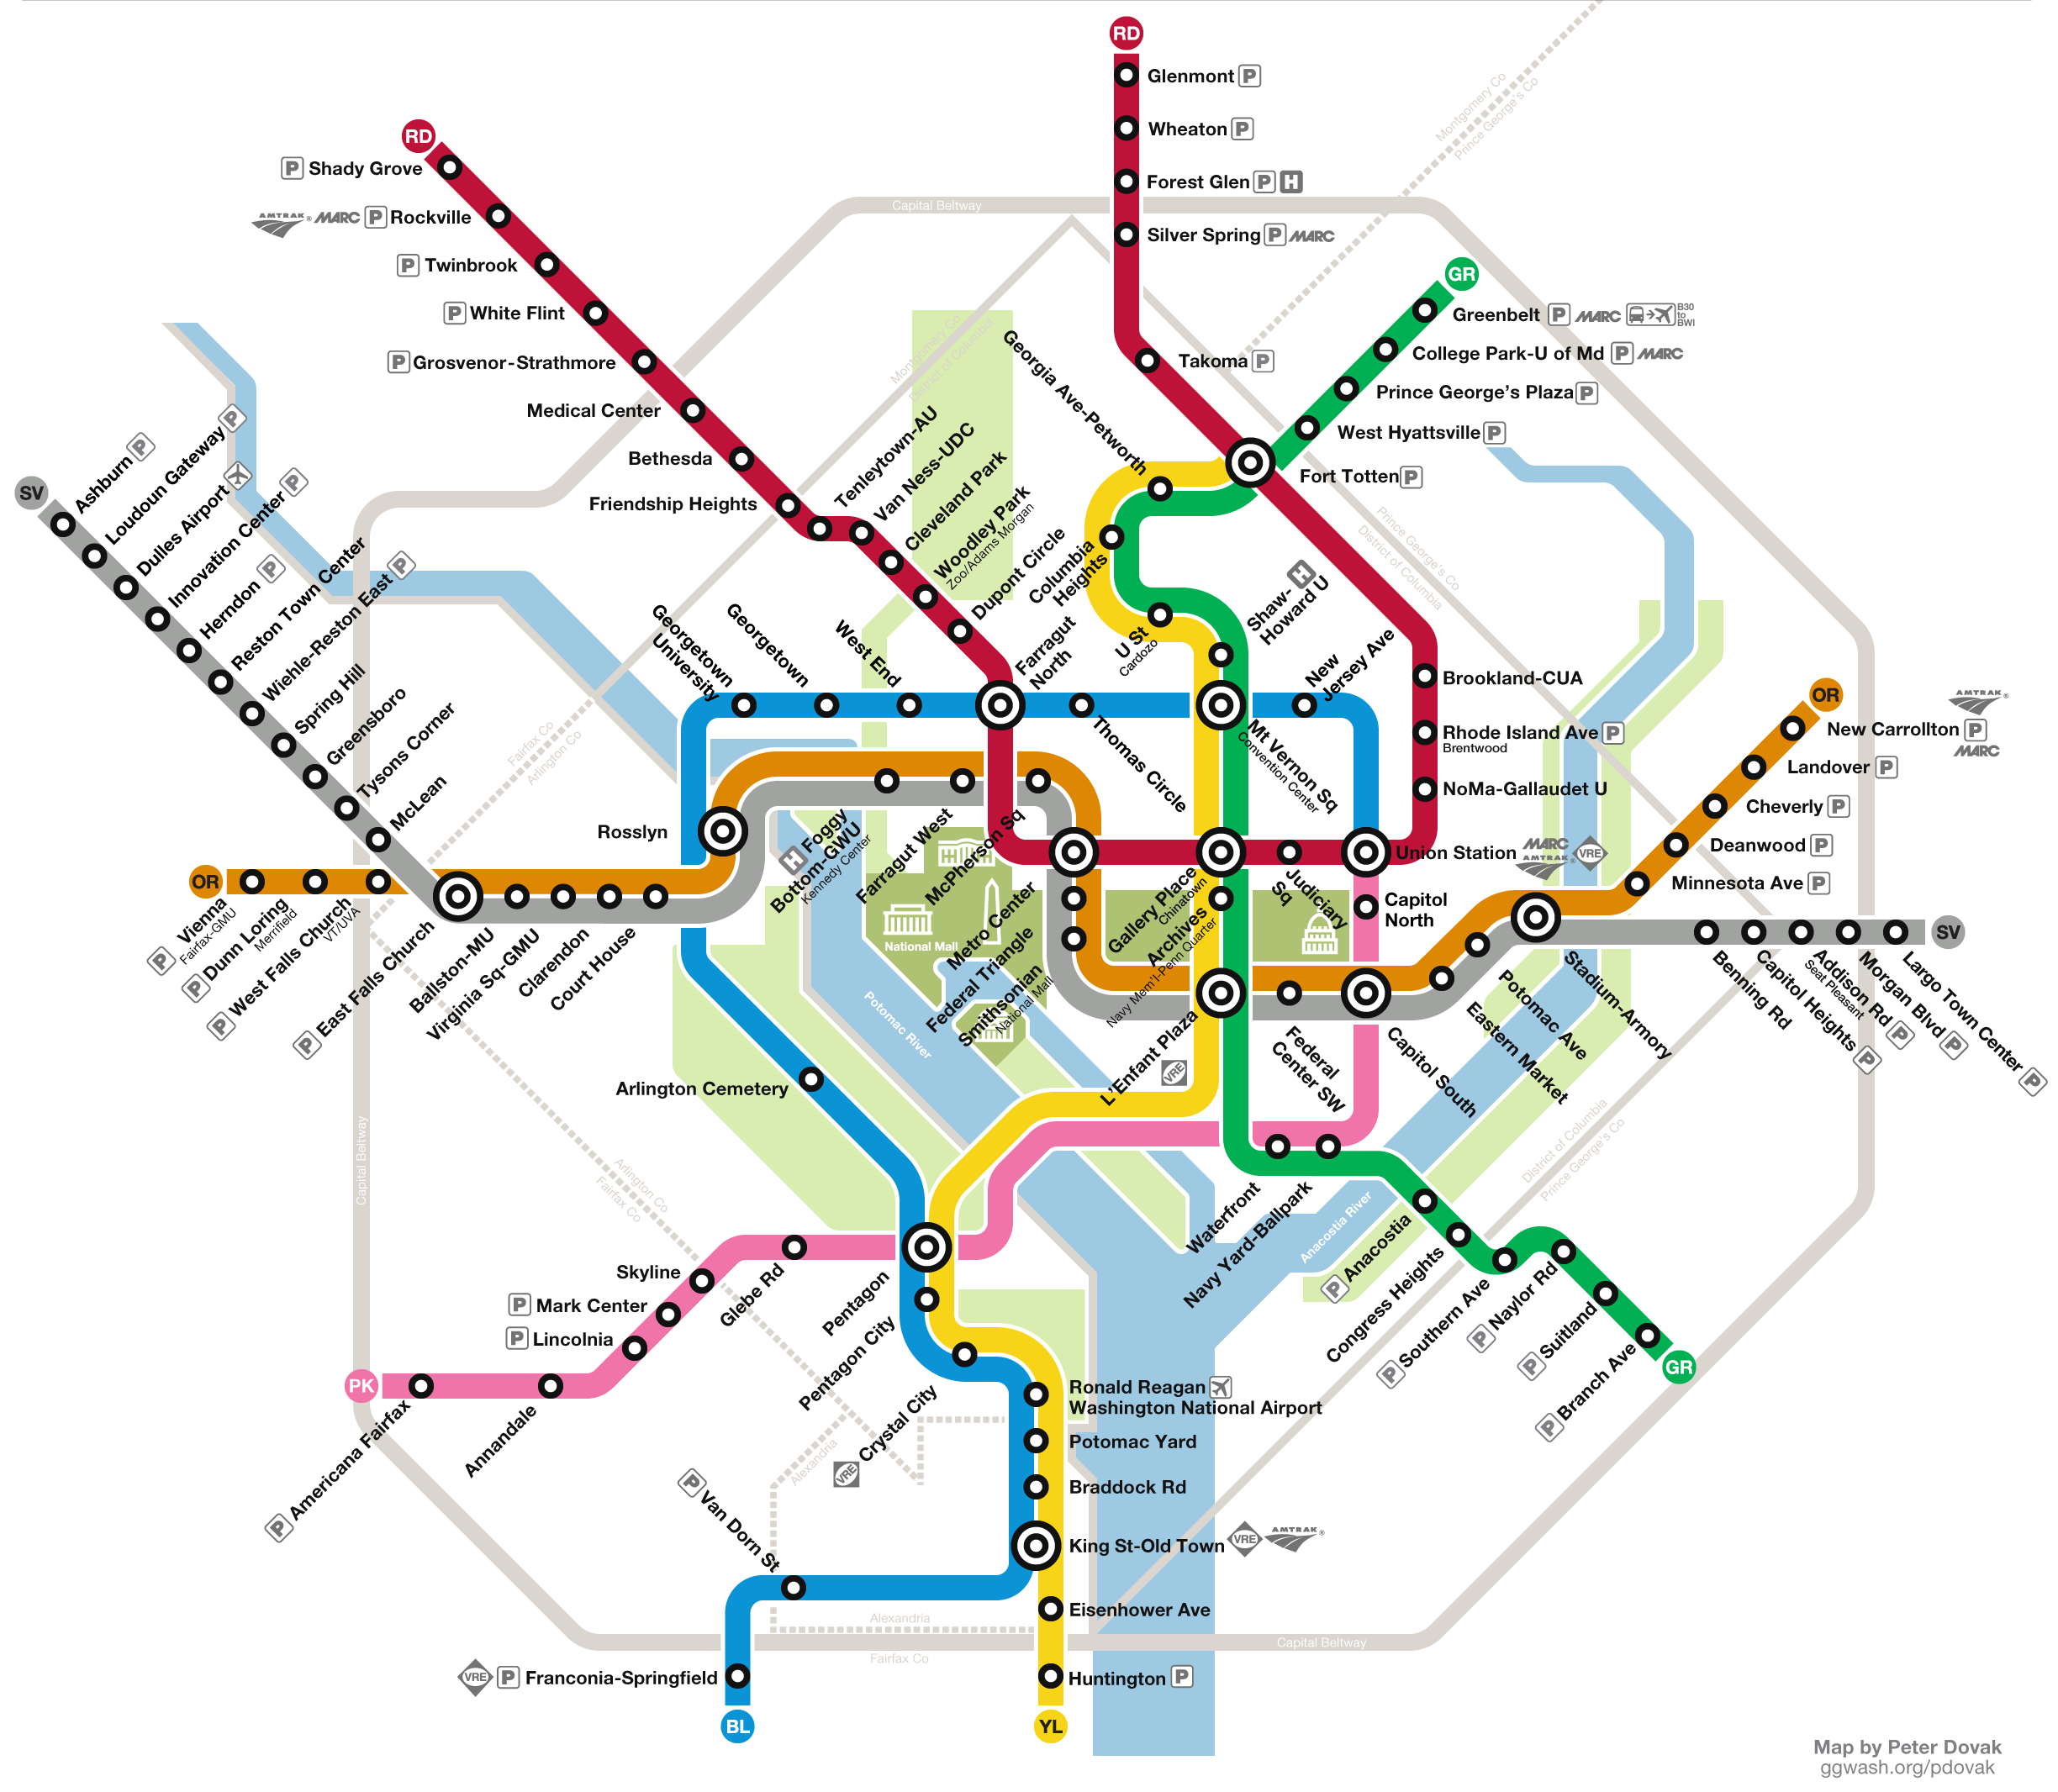 Subway Map Of Metro Dc.Conceptual Wmata Map By Peter Dovak Expanded Dc Metro System With